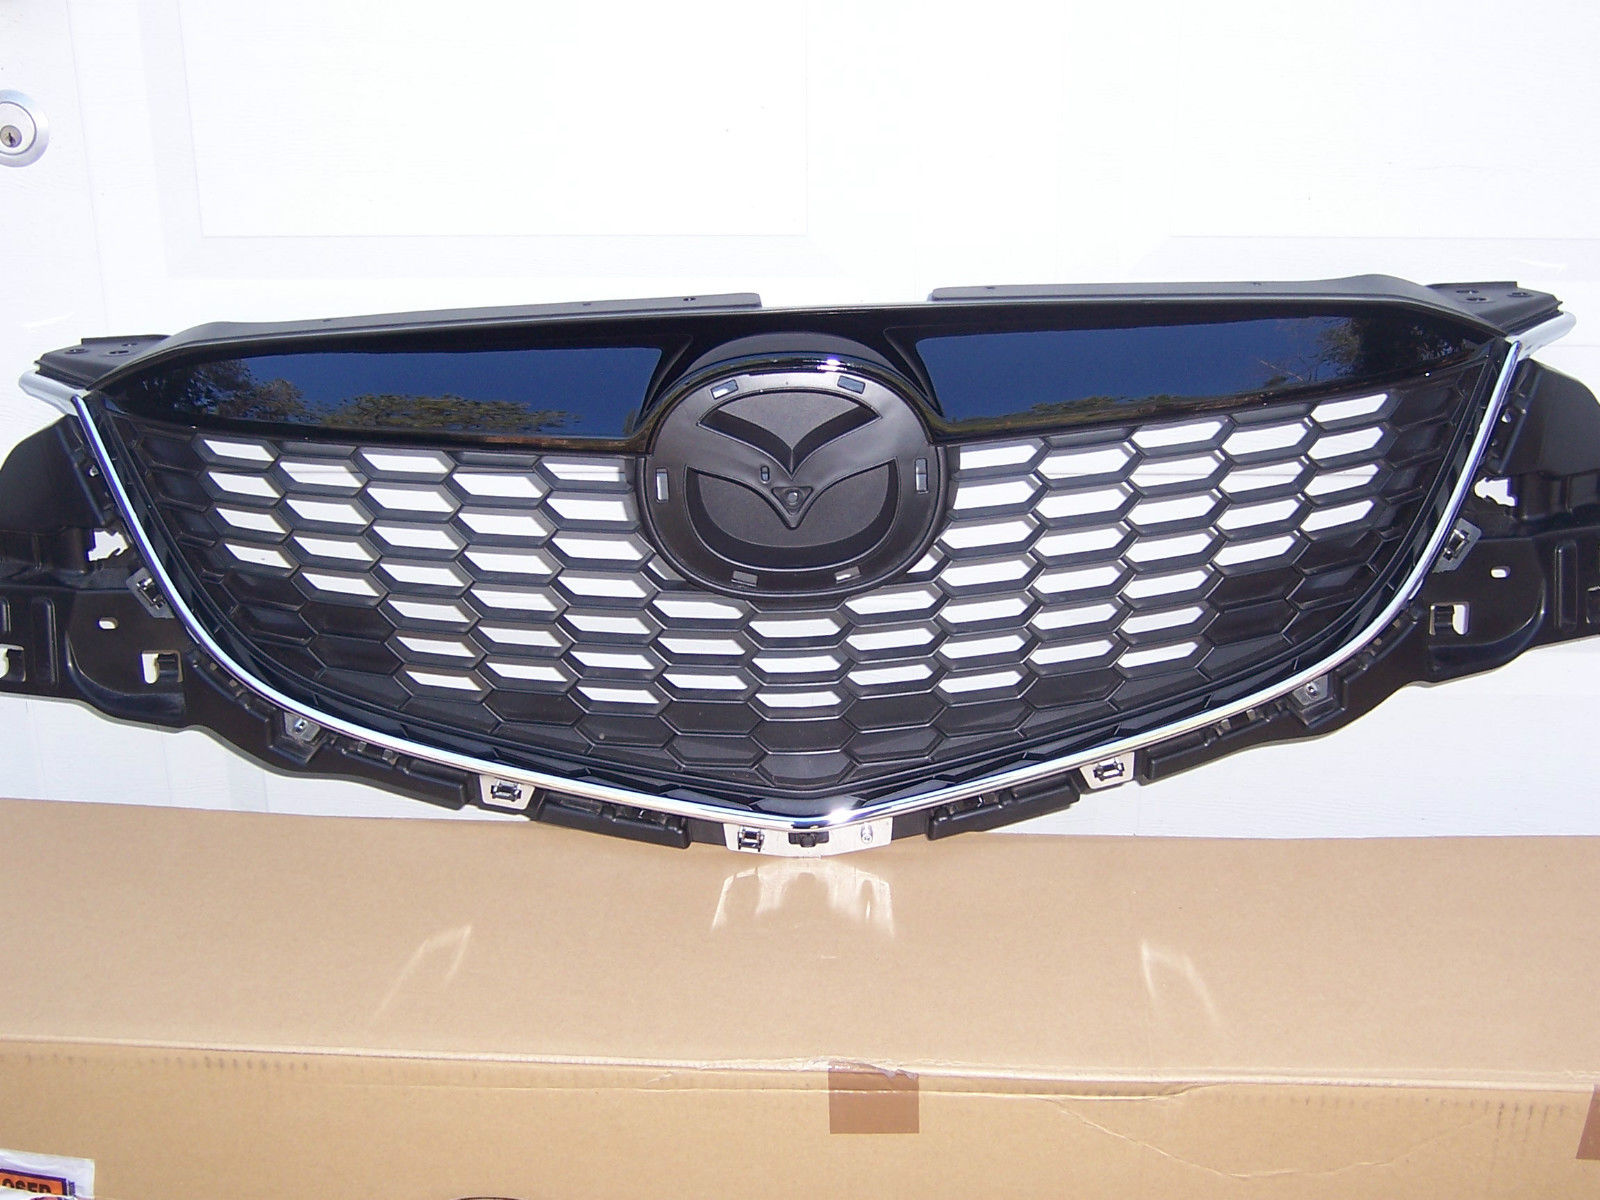 Persiana Frontal Mazda CX-5 2013 2014